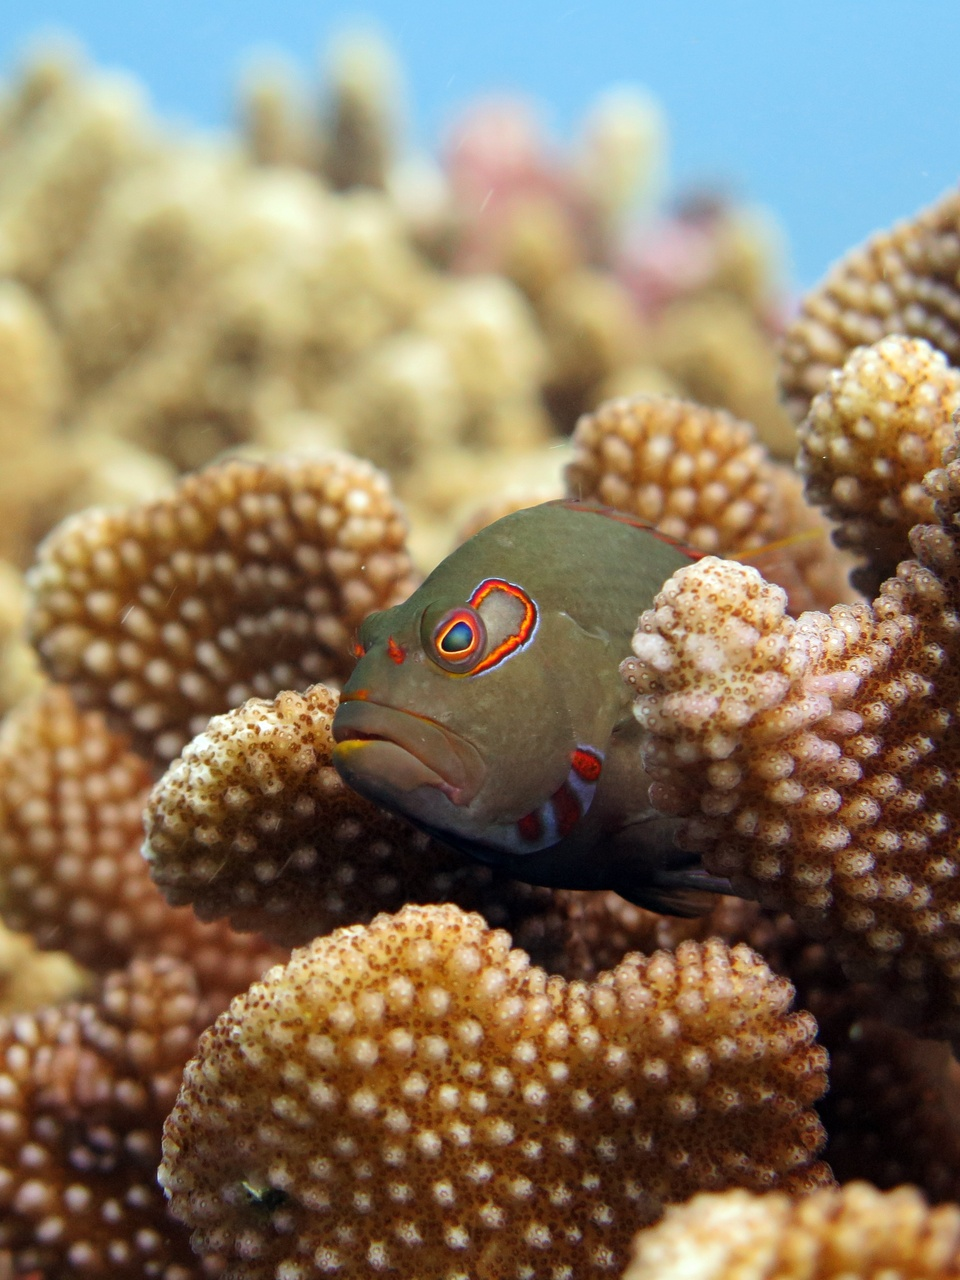 An arc-eye hawk fish perches on a head of Pocillopora coral. These predators lie in wait for unsuspecting small fishes and crustaceans to swim by, but if something bigger shows up, they are quick to dart into the safety of the coral branches. (Photo: NOAA Fisheries/Ari Halperin)